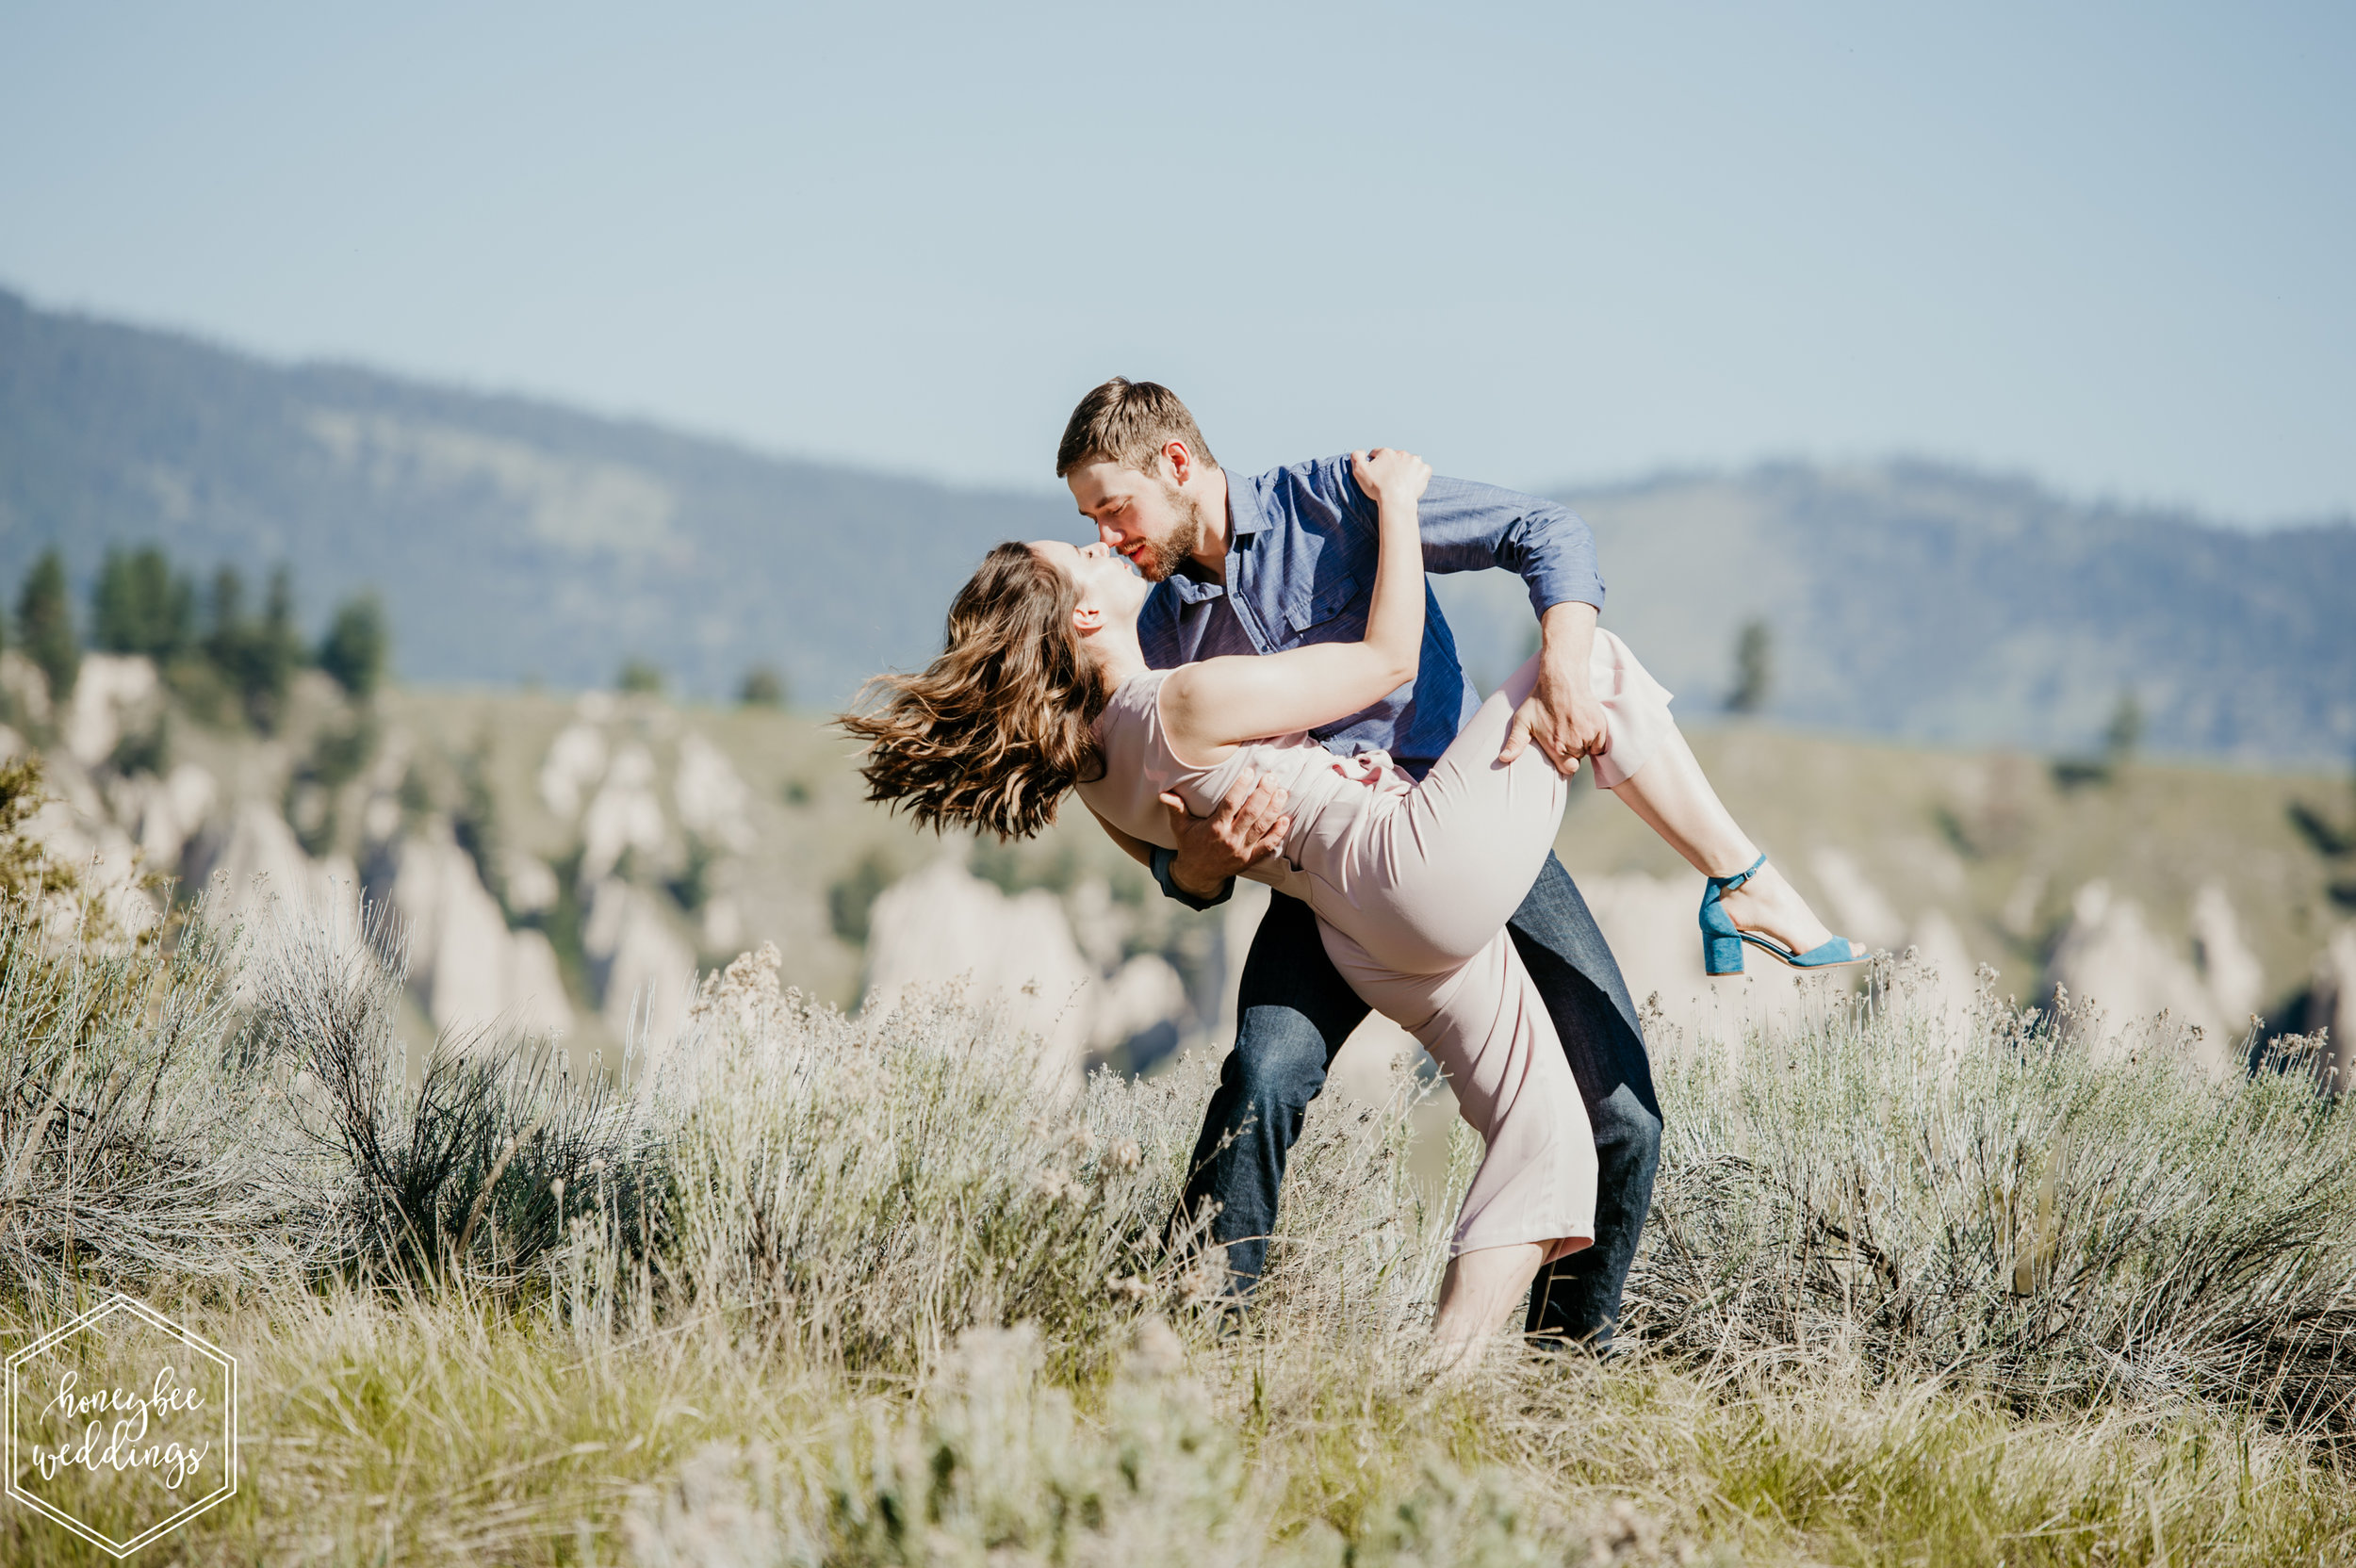 171Montana Wedding Photographer_Polson Engagement Session_Carrie & Matt_Honeybee Weddings_May 11, 2019-192.jpg